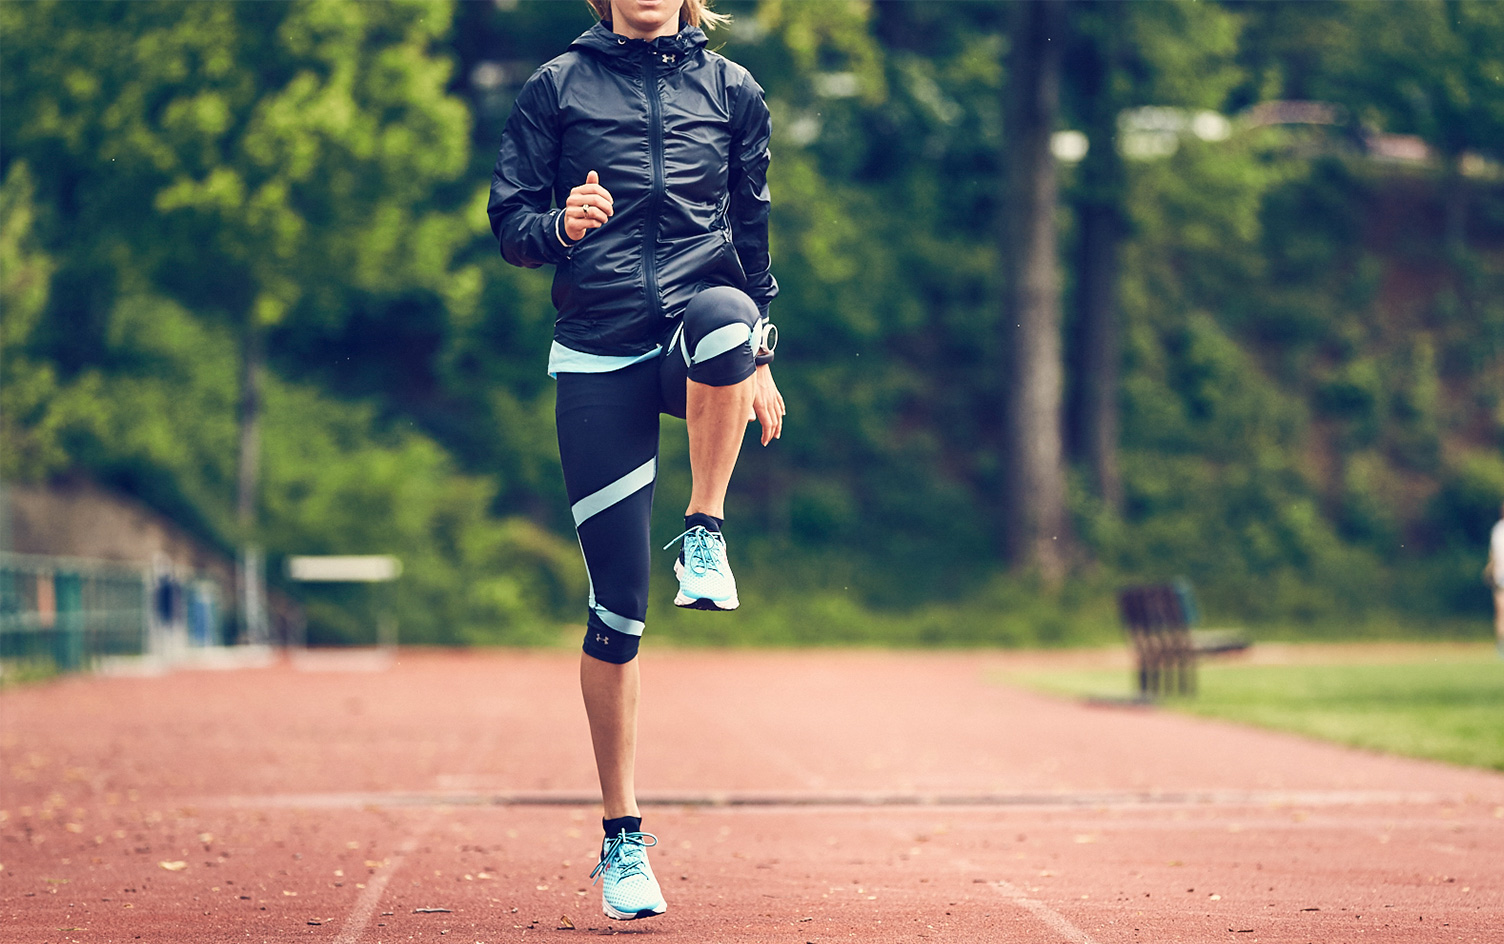 jogging-tips-for-beginners-warm-up_image